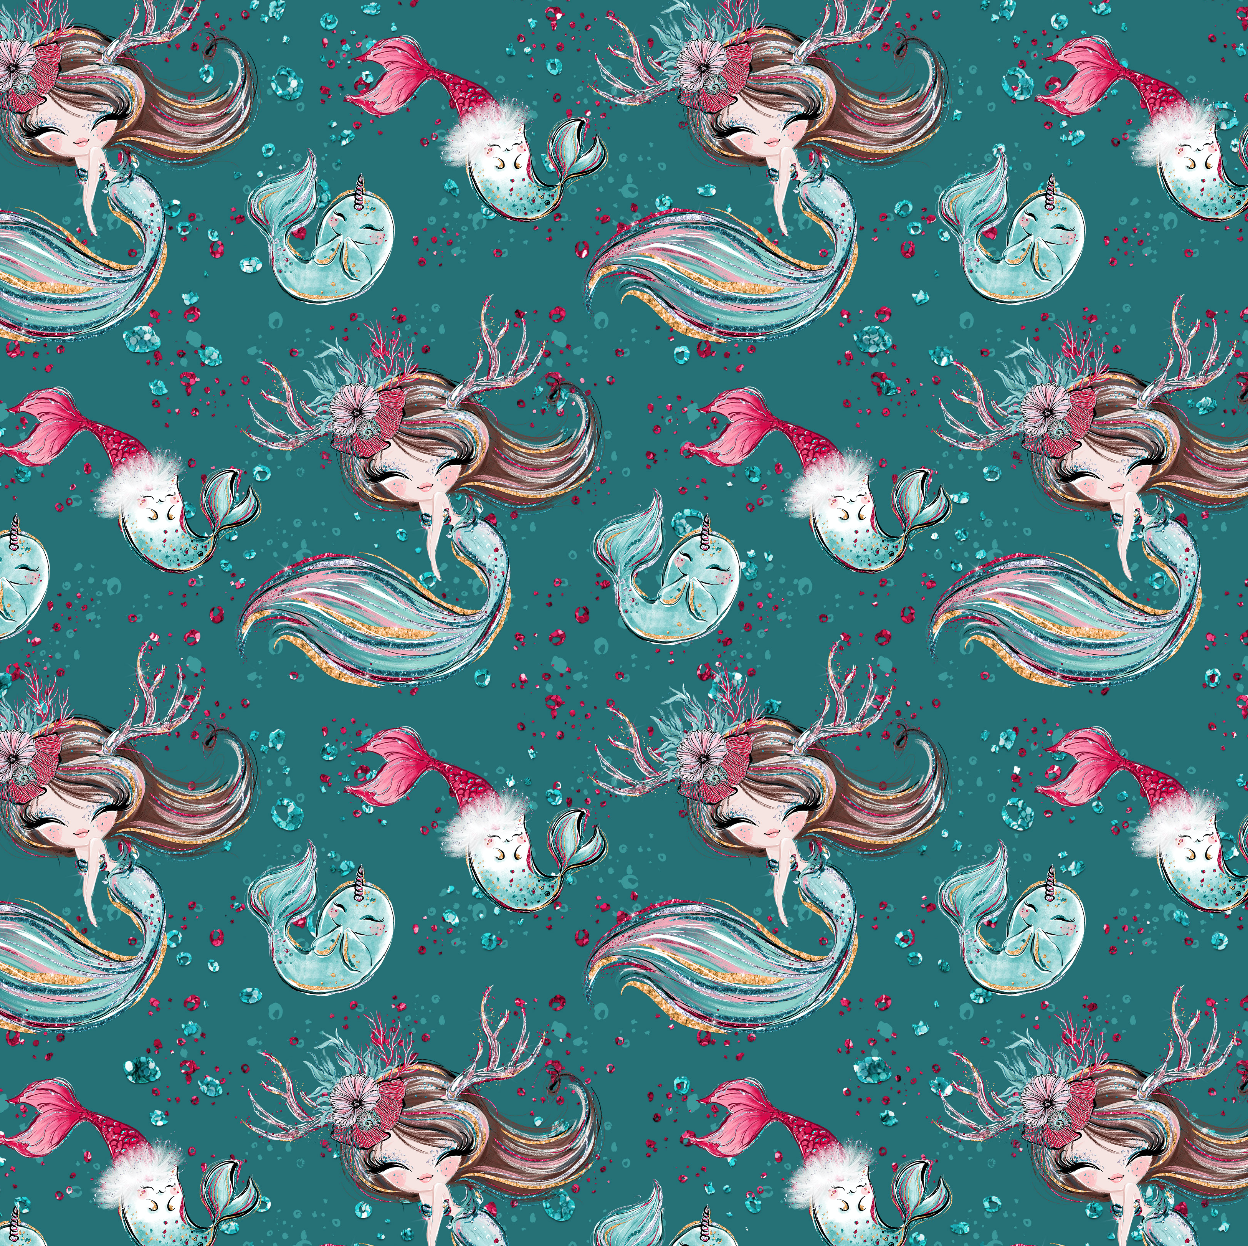 PRE ORDER Christmas Mermaids & Fishies Fabric